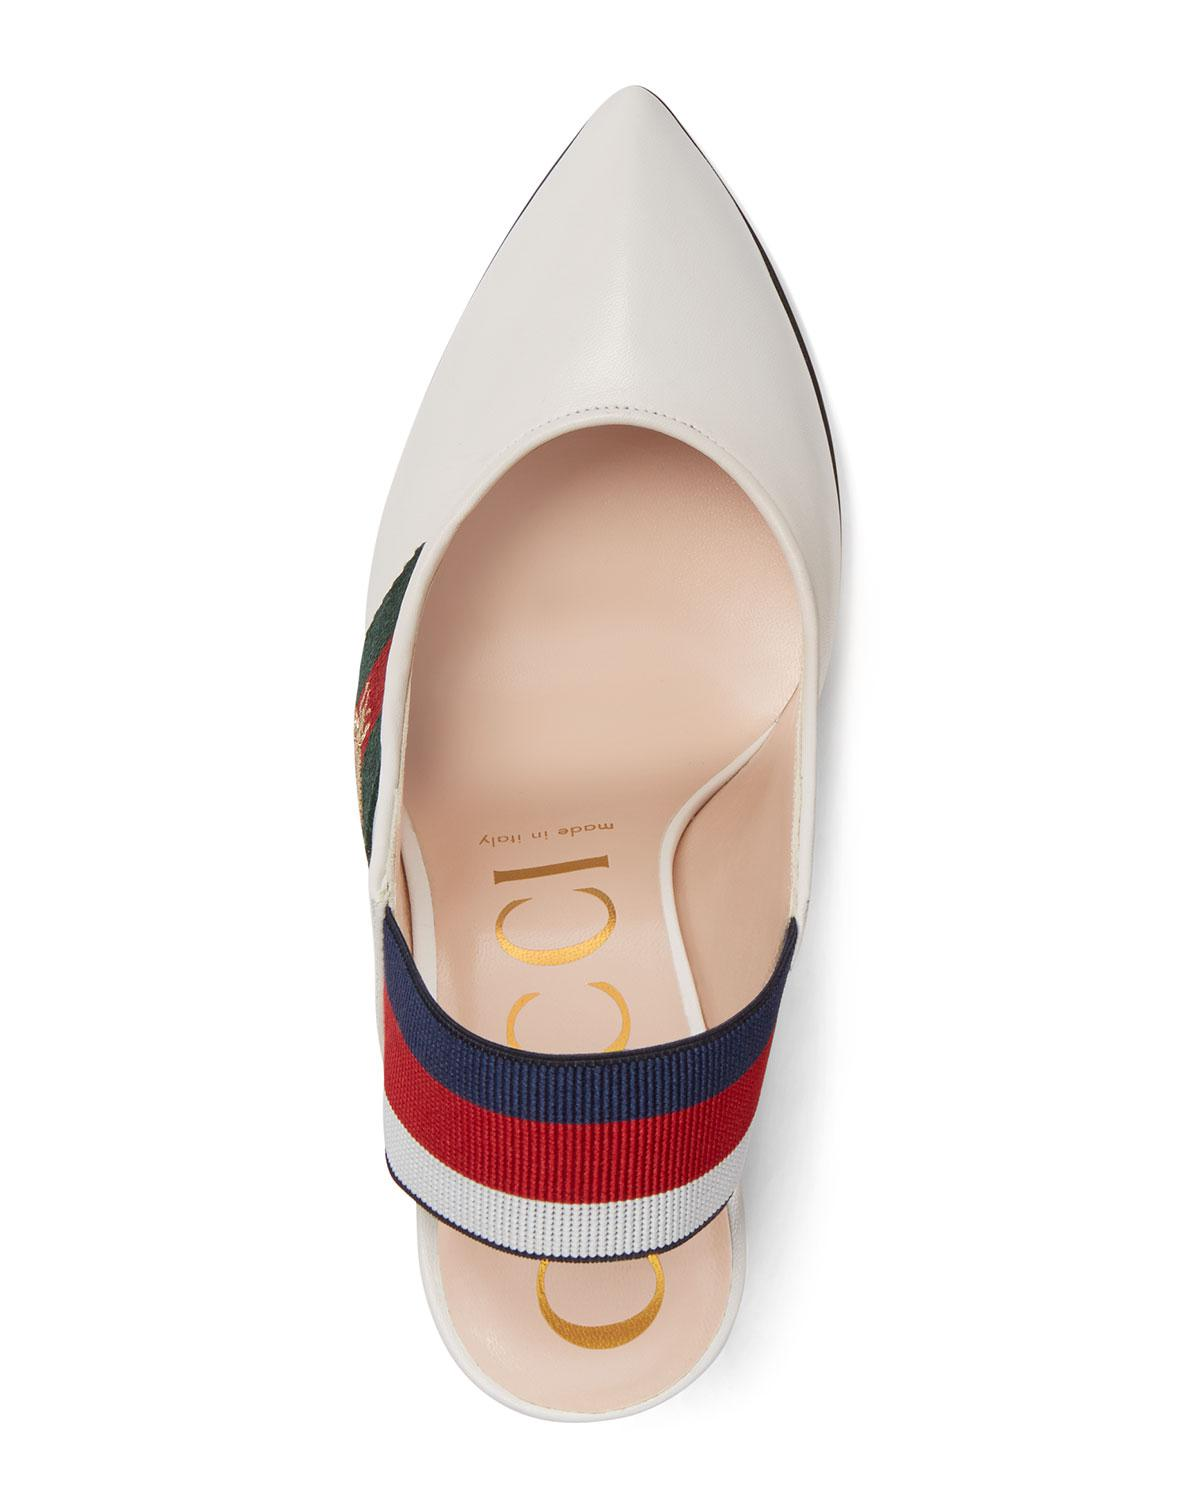 821bf38b1 Gucci Leather Web Slingback Pump in White - Save 55% - Lyst